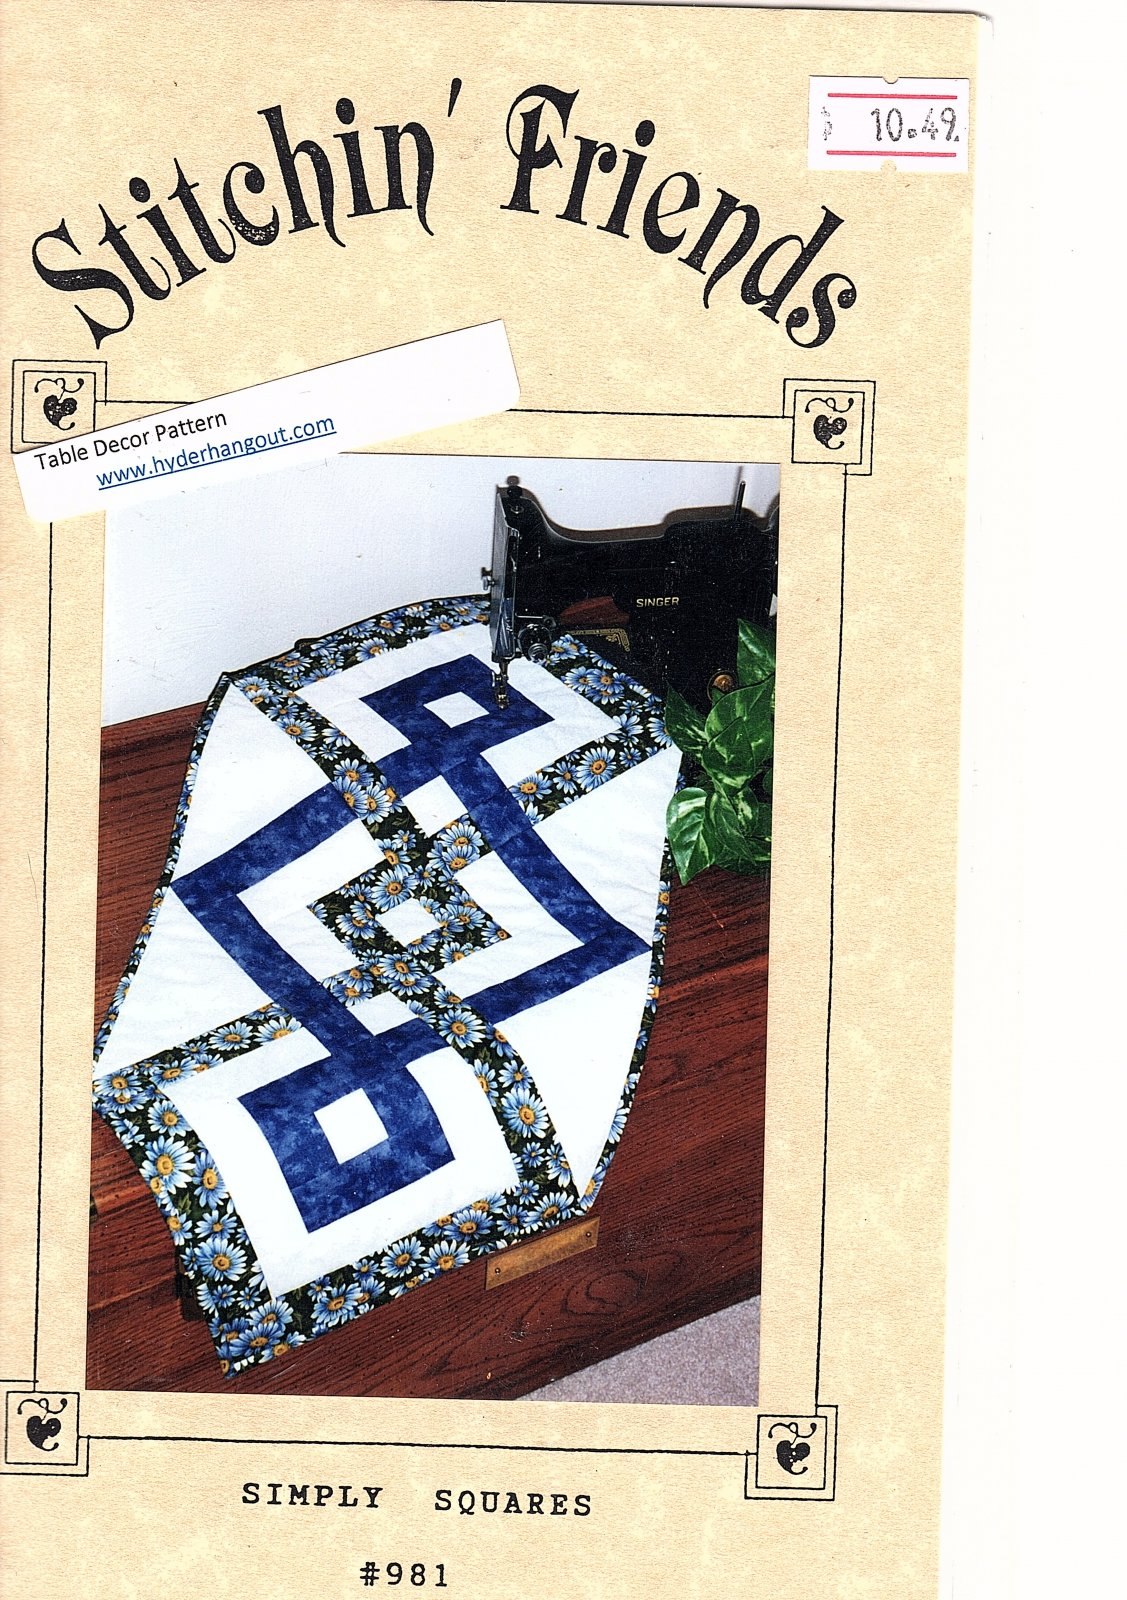 Simply Squares #981 Stitching Friends 15 x 32 Table Runner